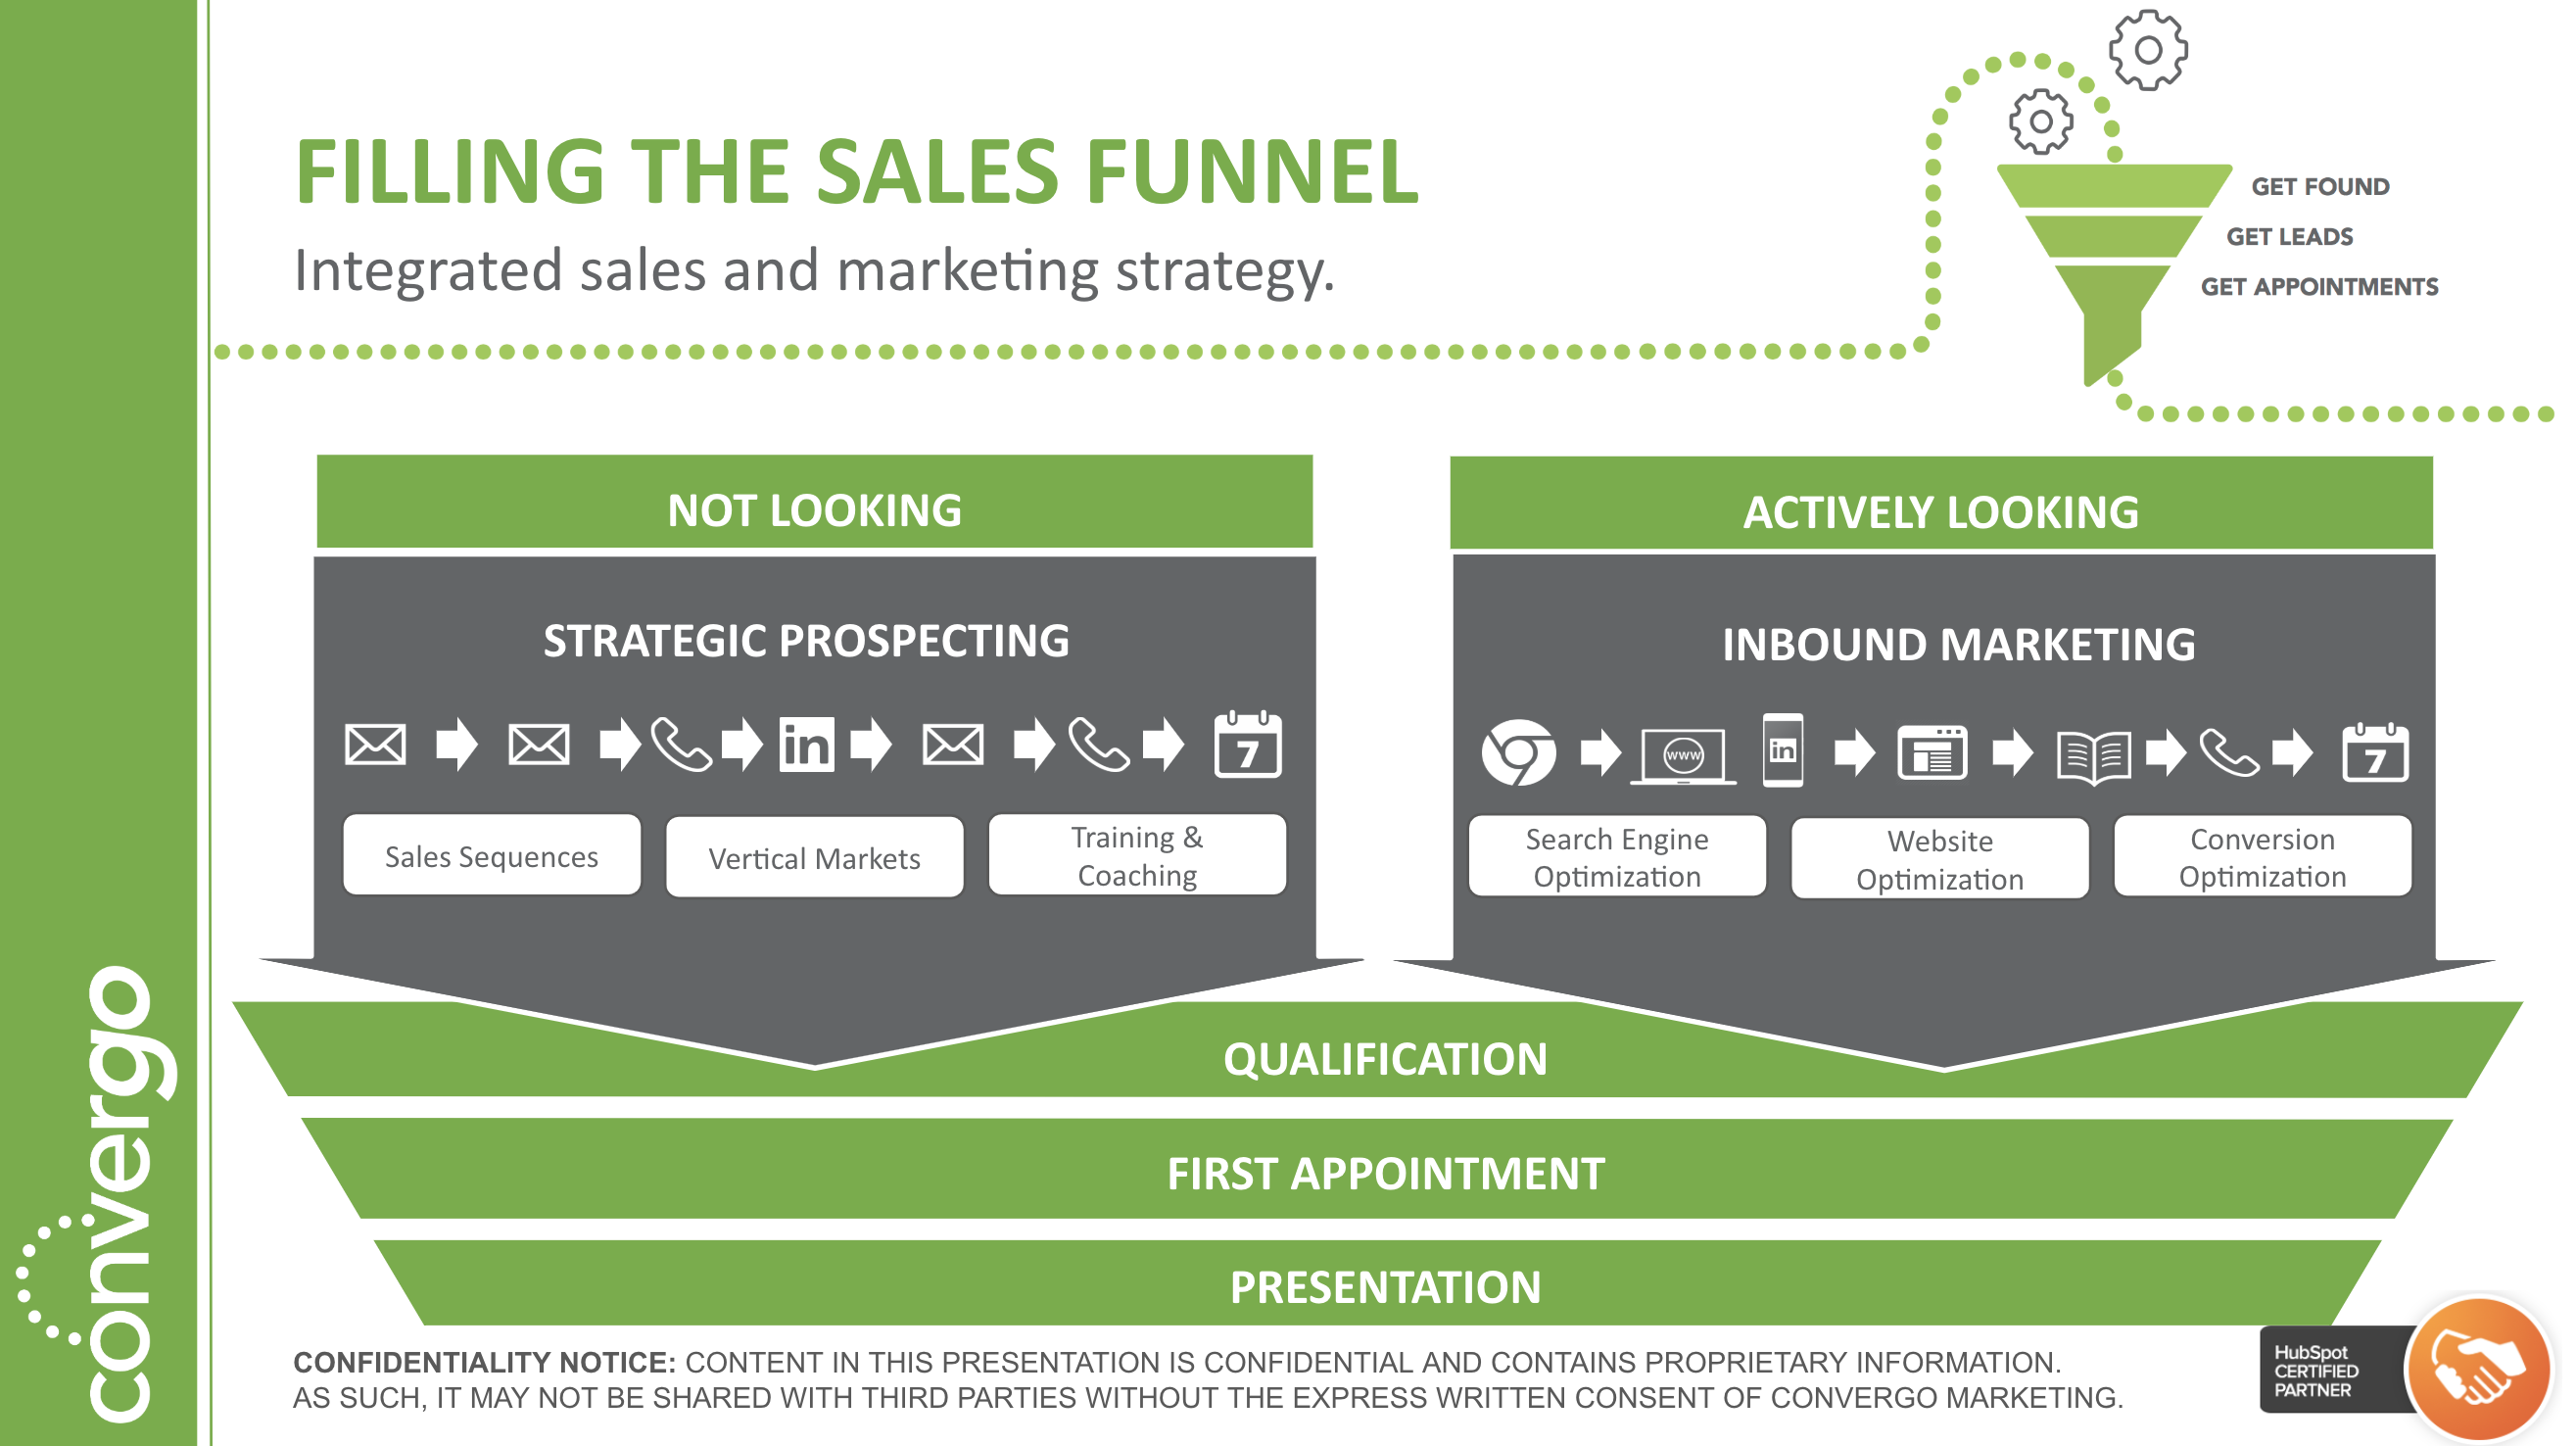 Fill your sales funnel with integrated sales and marketing strategies.